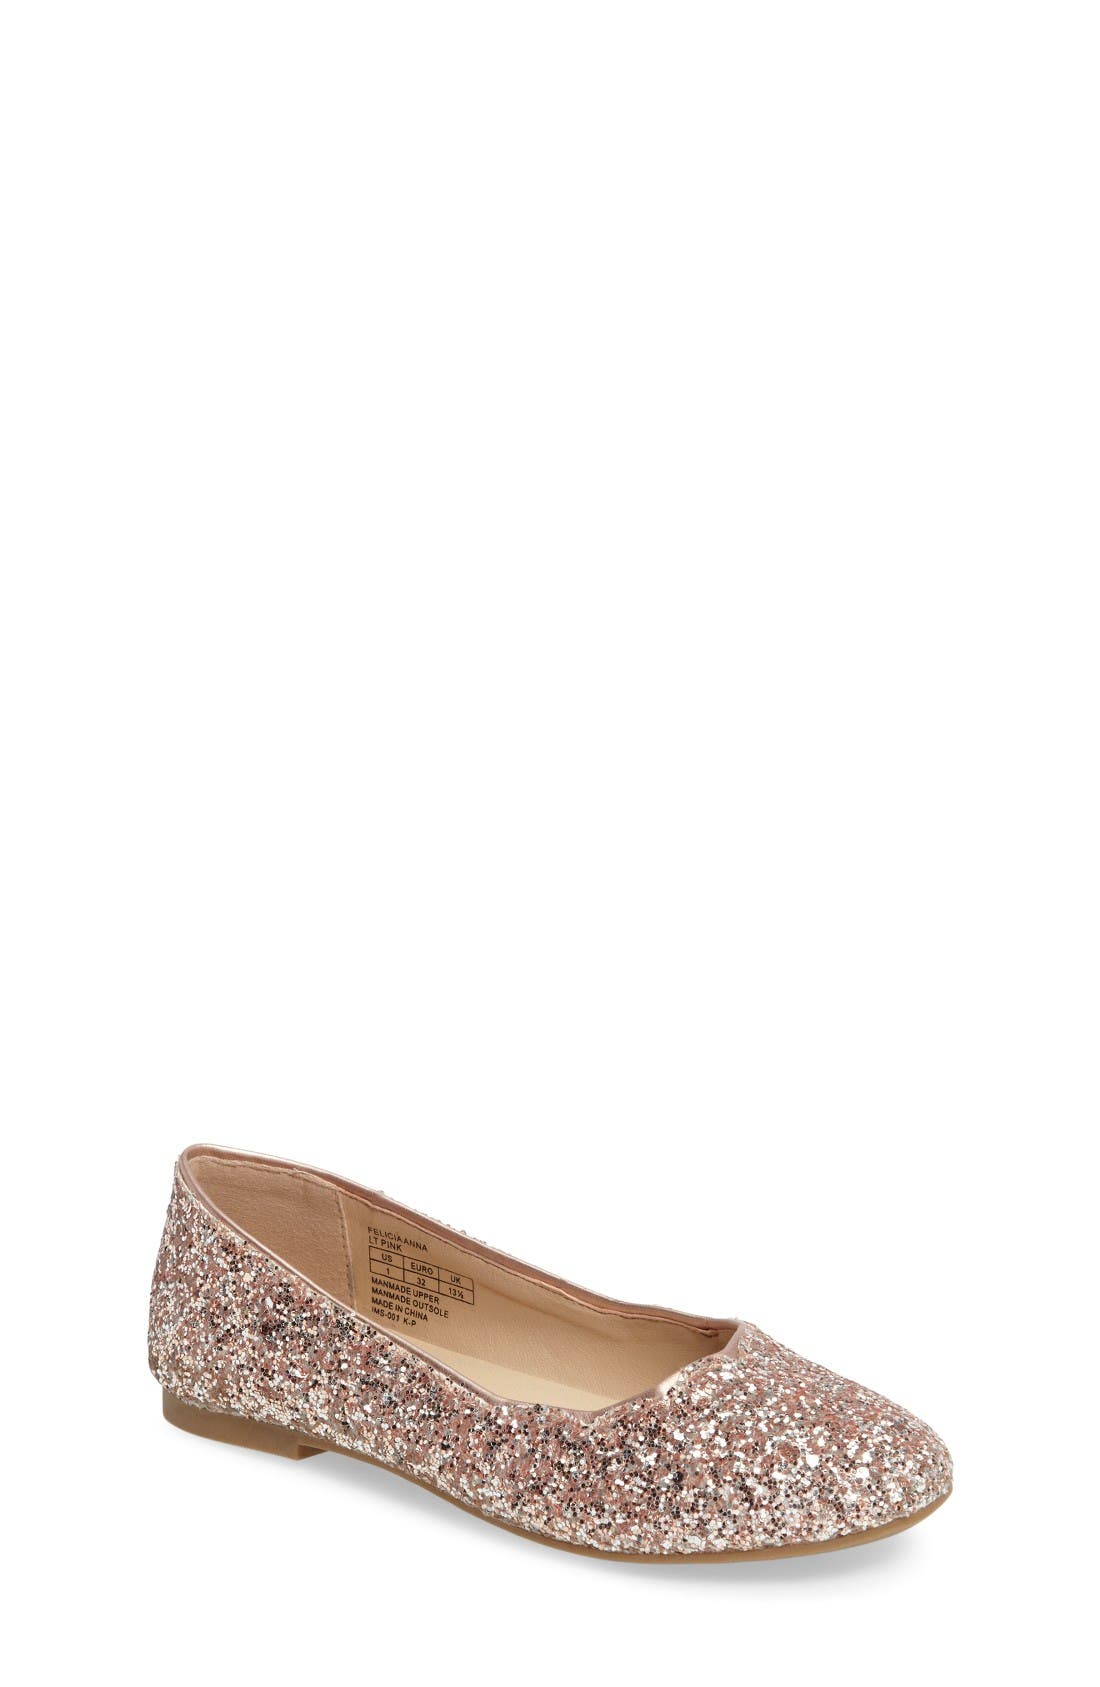 Sam Edelman Felicia Anna Glitter Ballet Flat (Toddler, Little Kid & Big Kid)